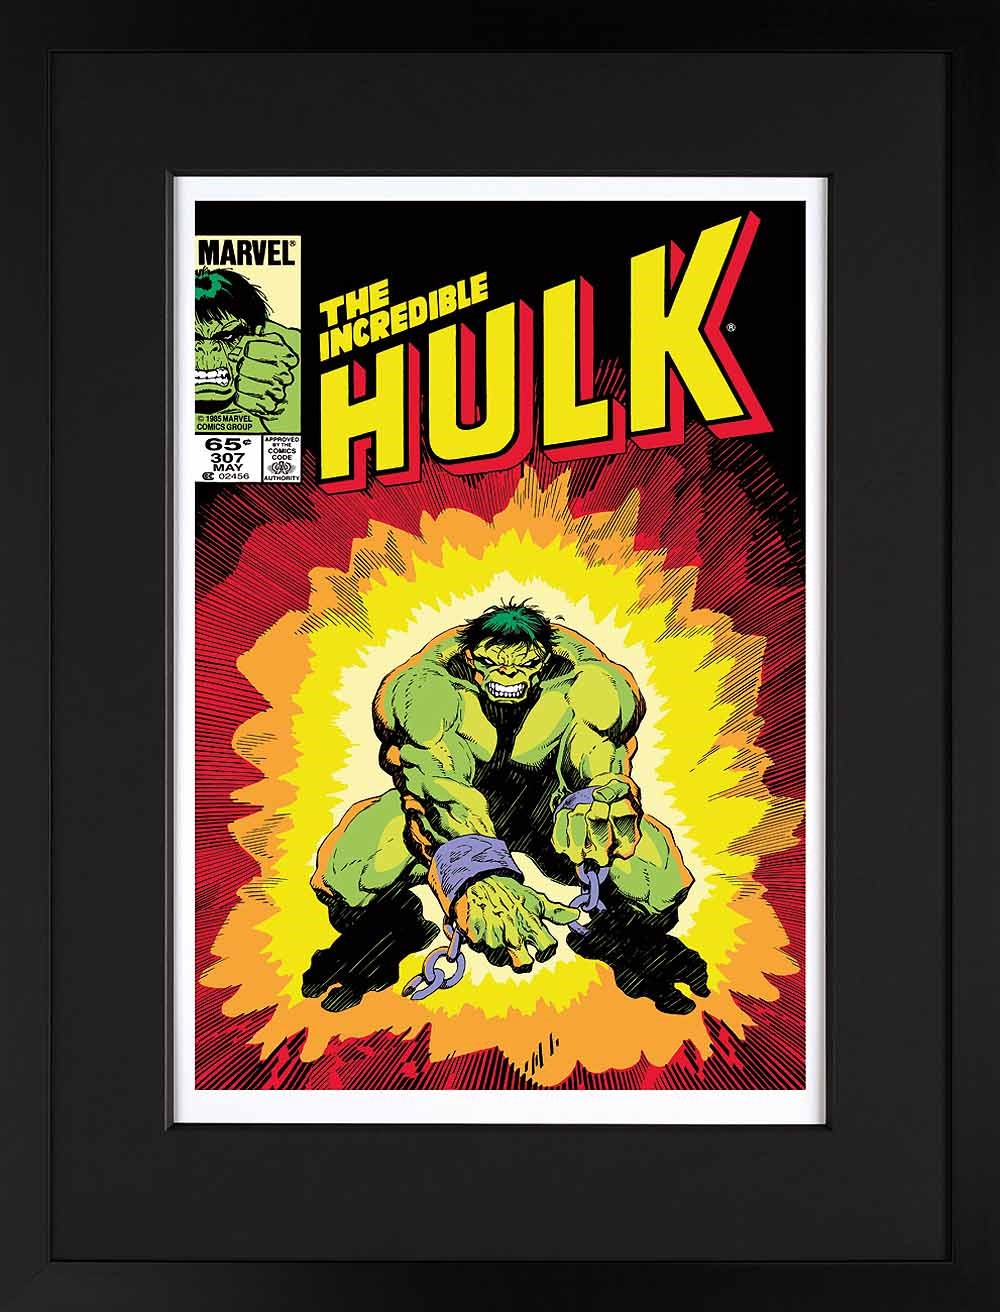 The Incredible Hulk by Marvel Comics - Stan Lee, Marvel | Comic | Nostalgic